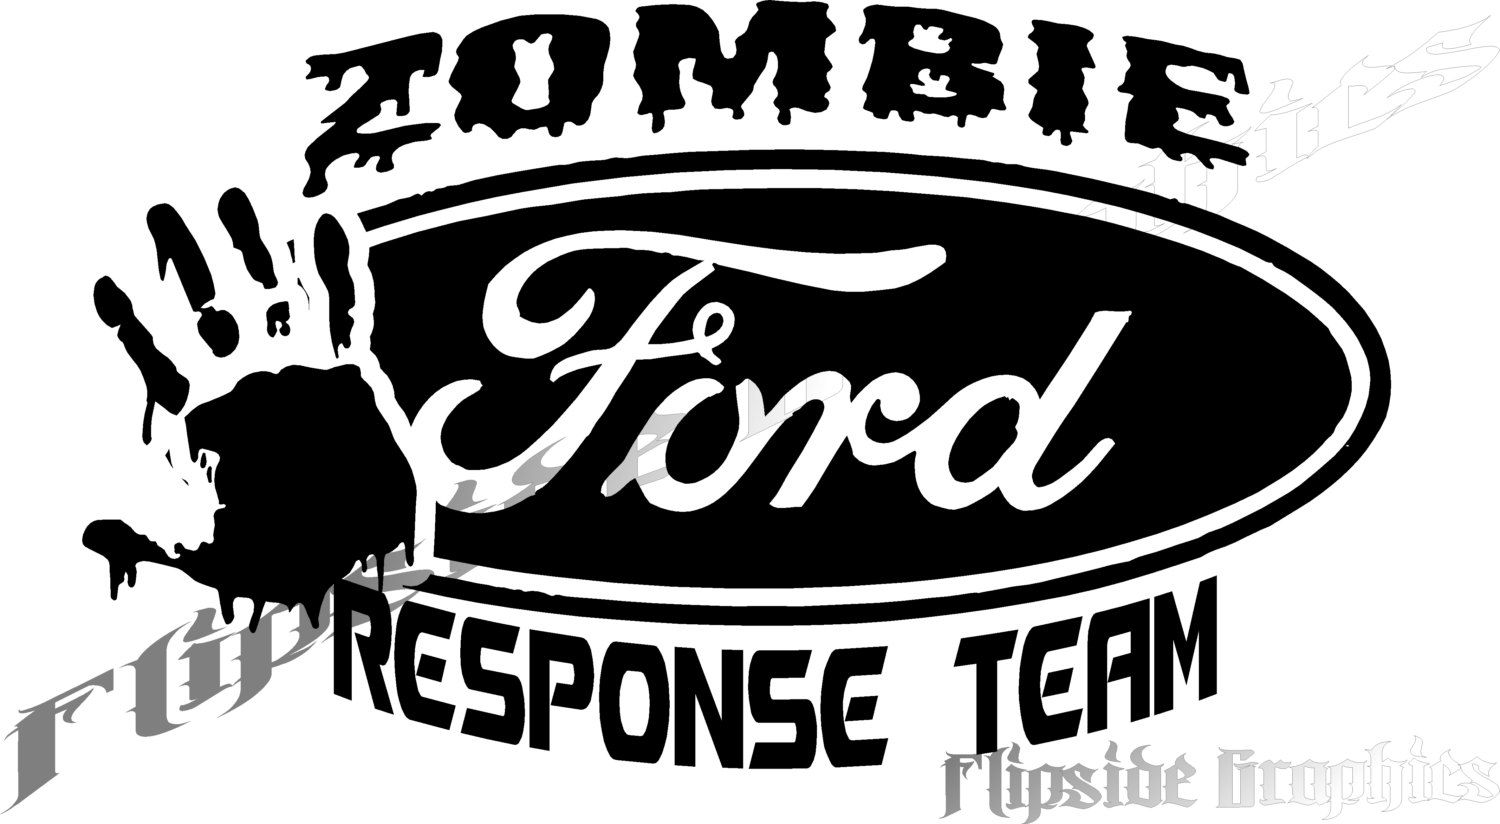 Custom Car Decals: Custom Zombie Response Decal Ford Trucks Cars Windows